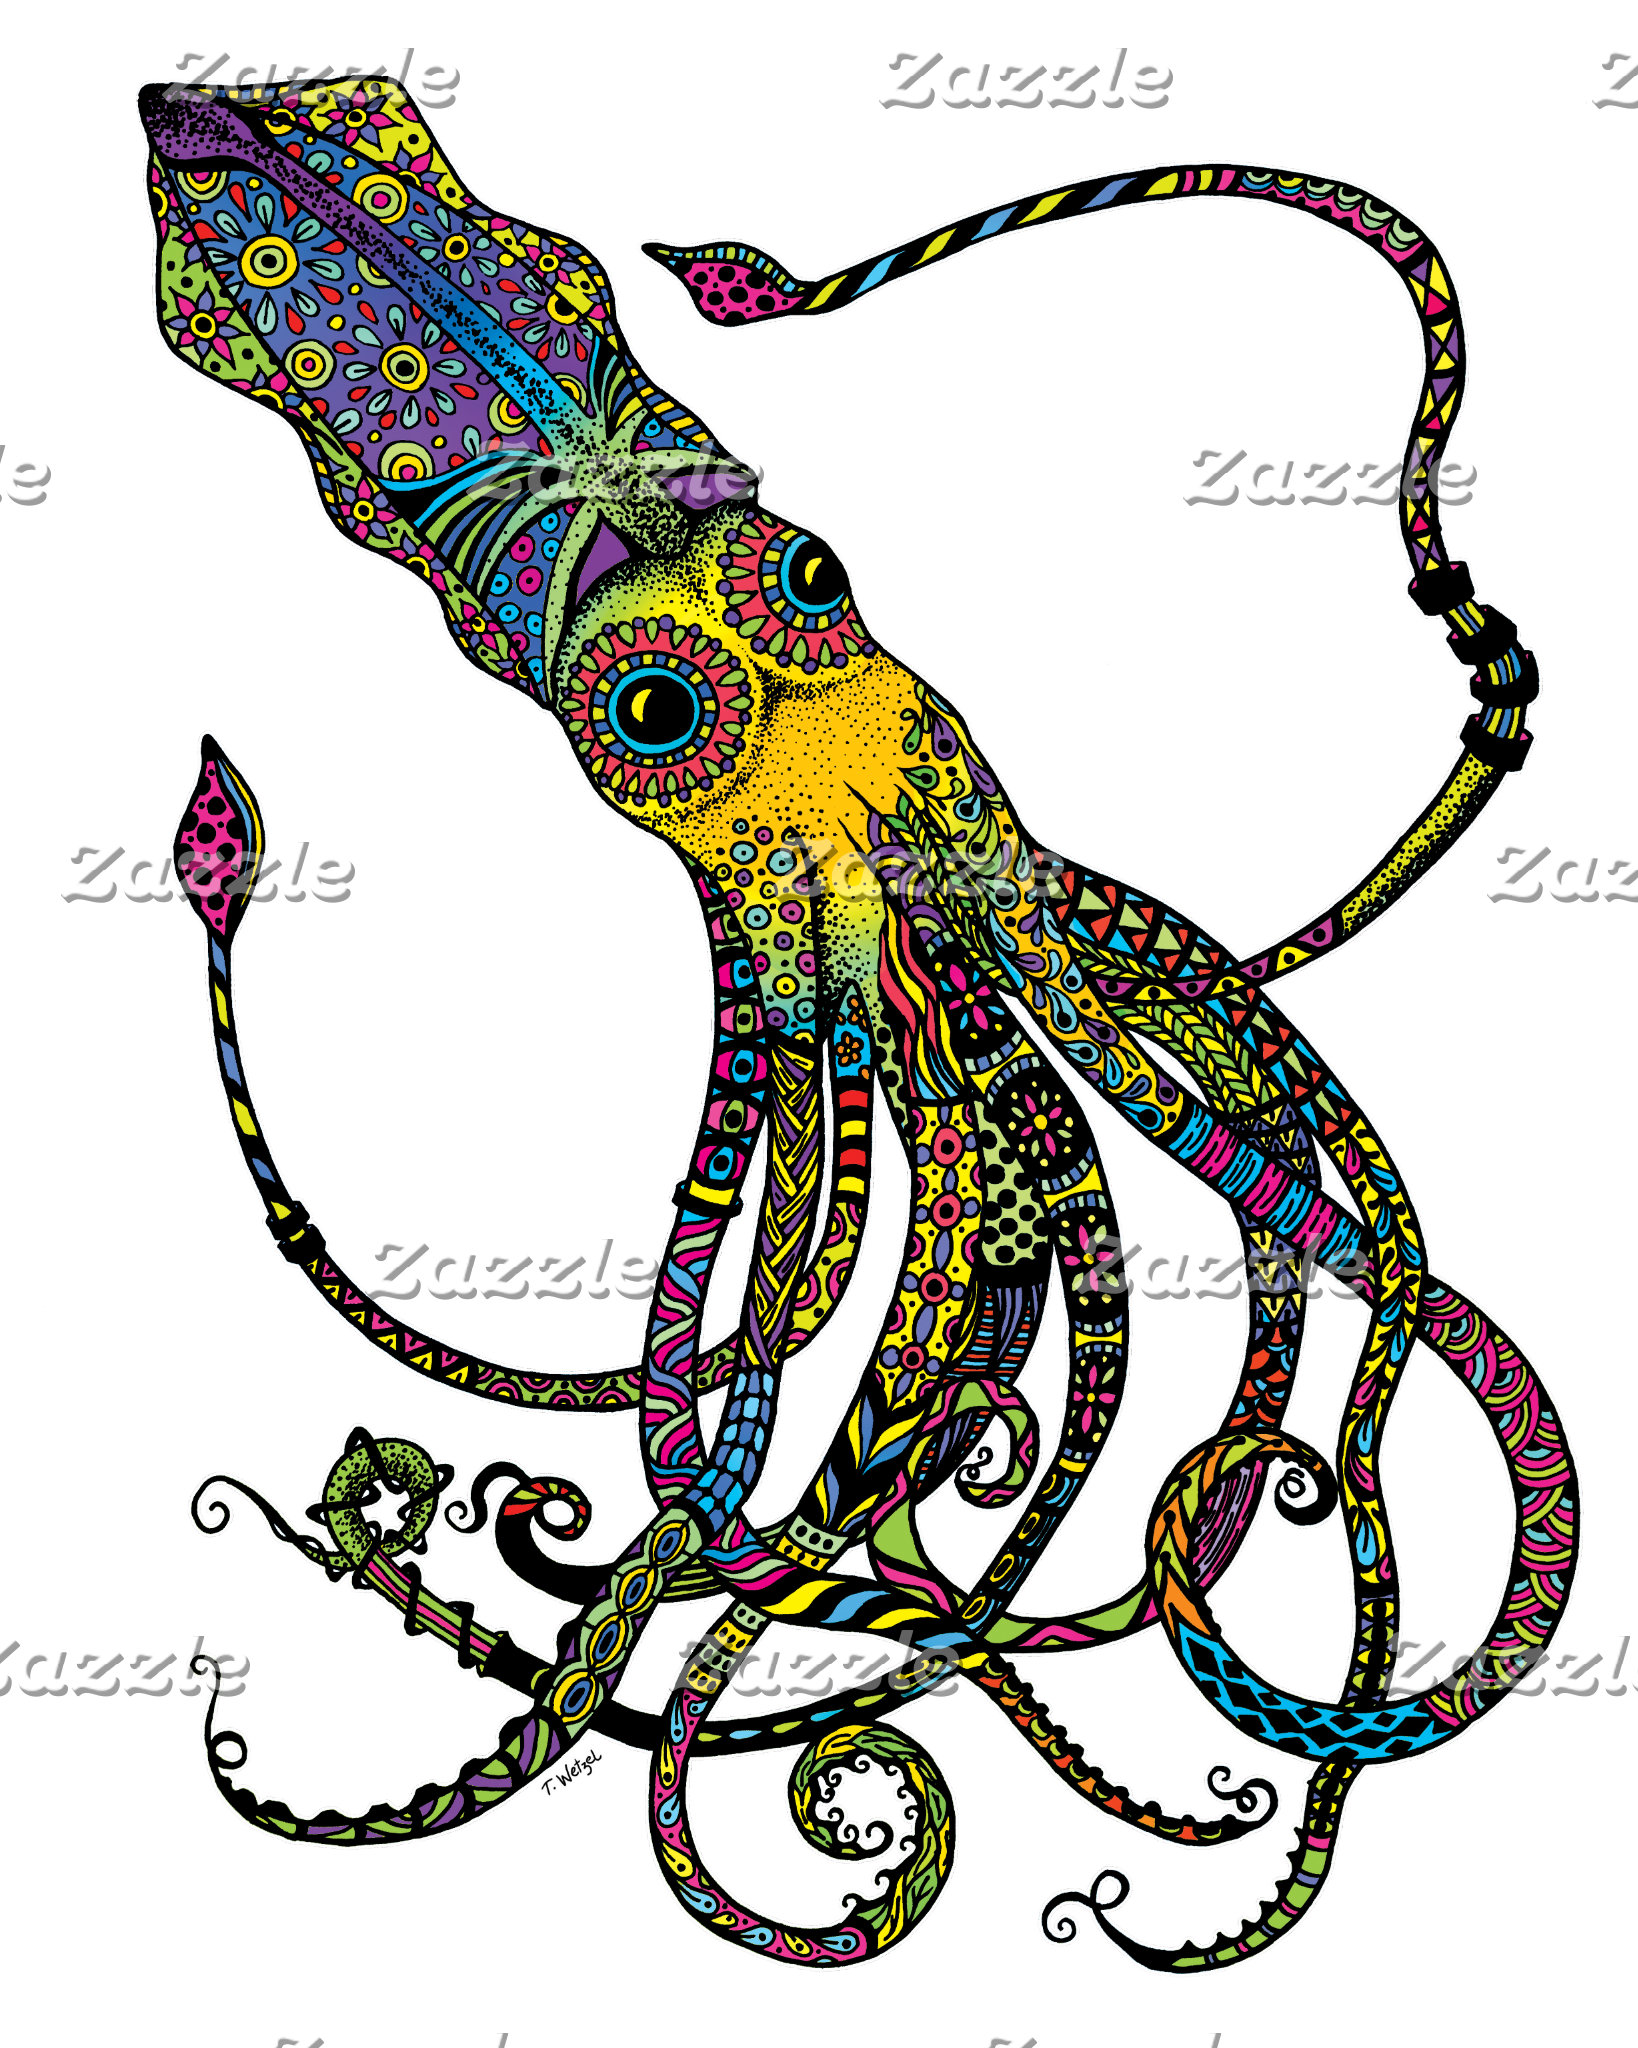 Electric Squid